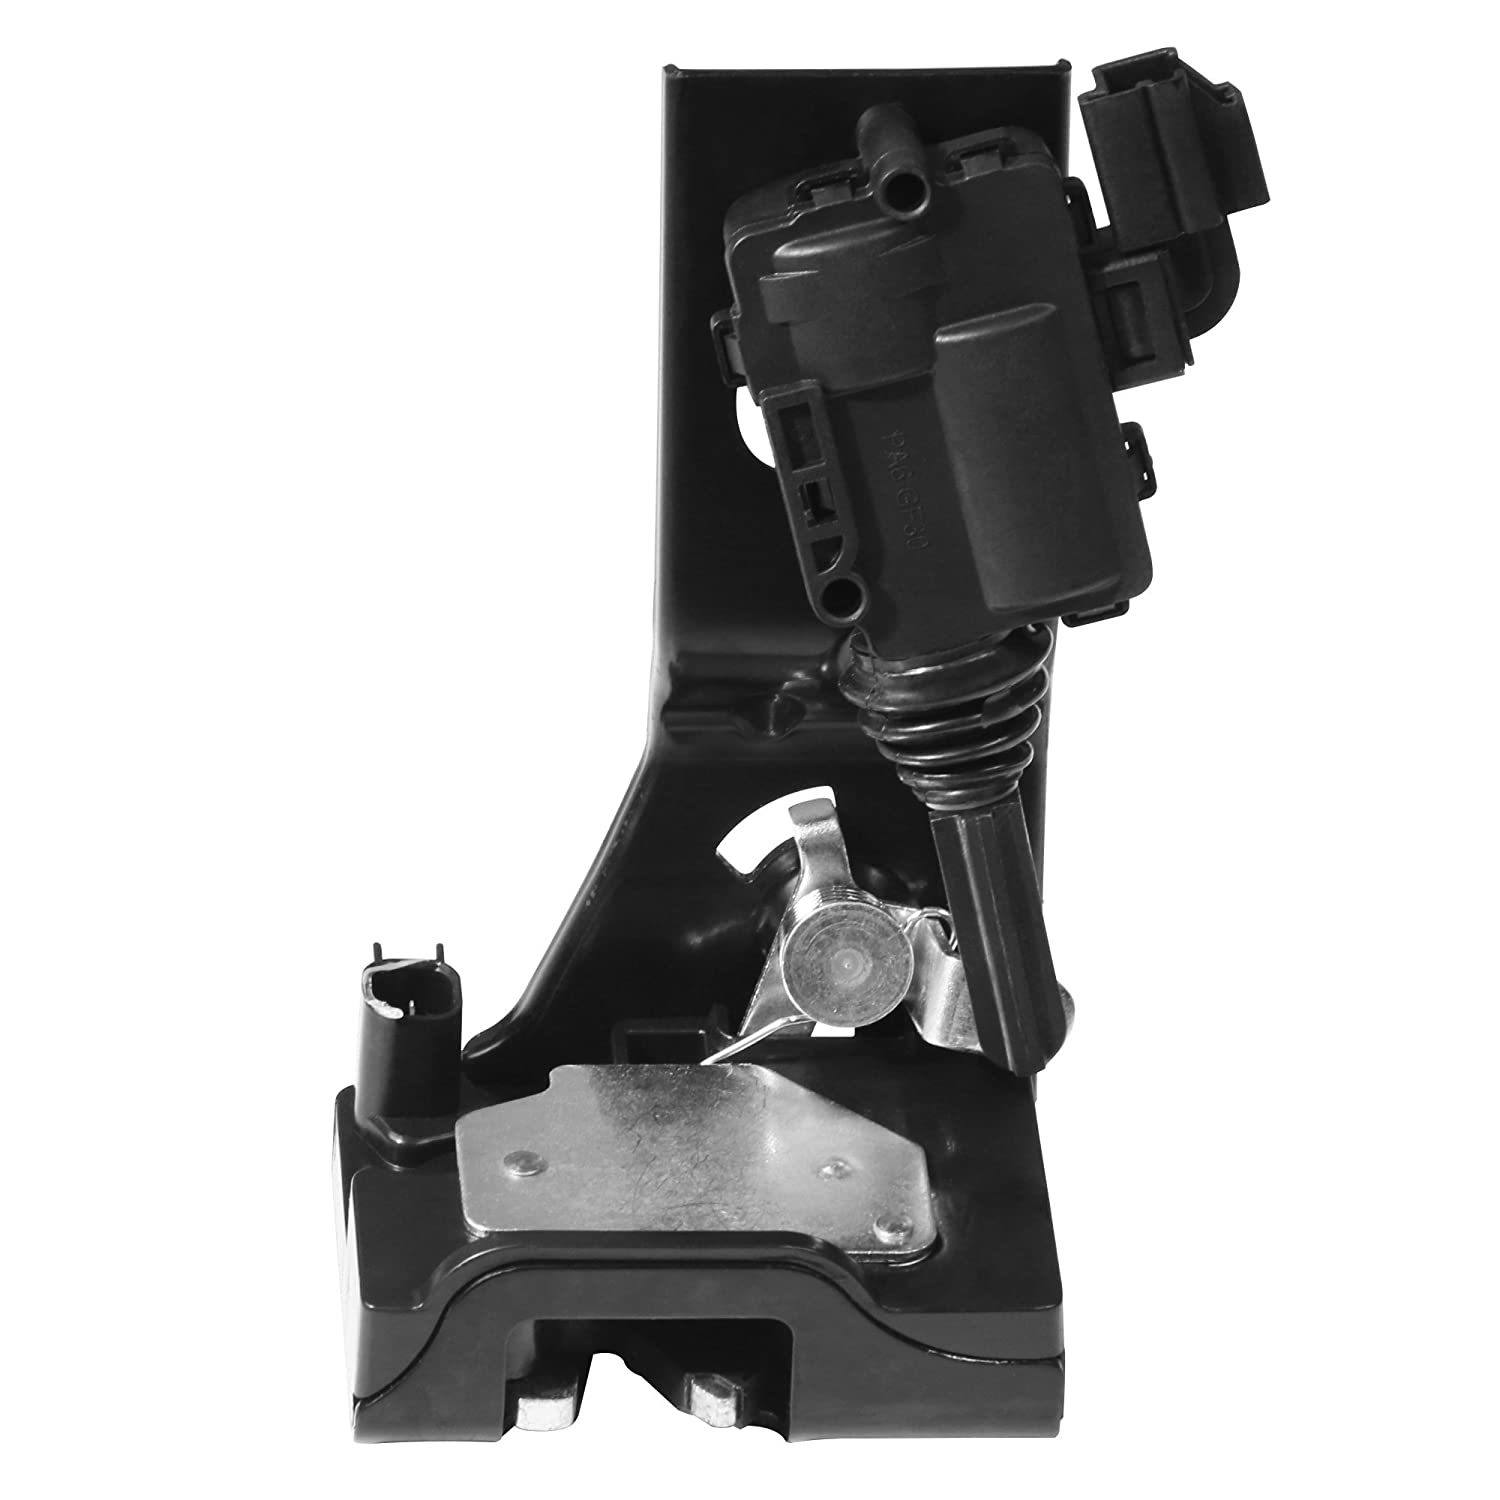 Rear Liftgate Door Lock Actuator Tailgate Latch 2003 Ford Escape Diagram On Expedition Assembly Replaces 9l8z 7843150 B 937 663 9l8z843150b 937663 Fits